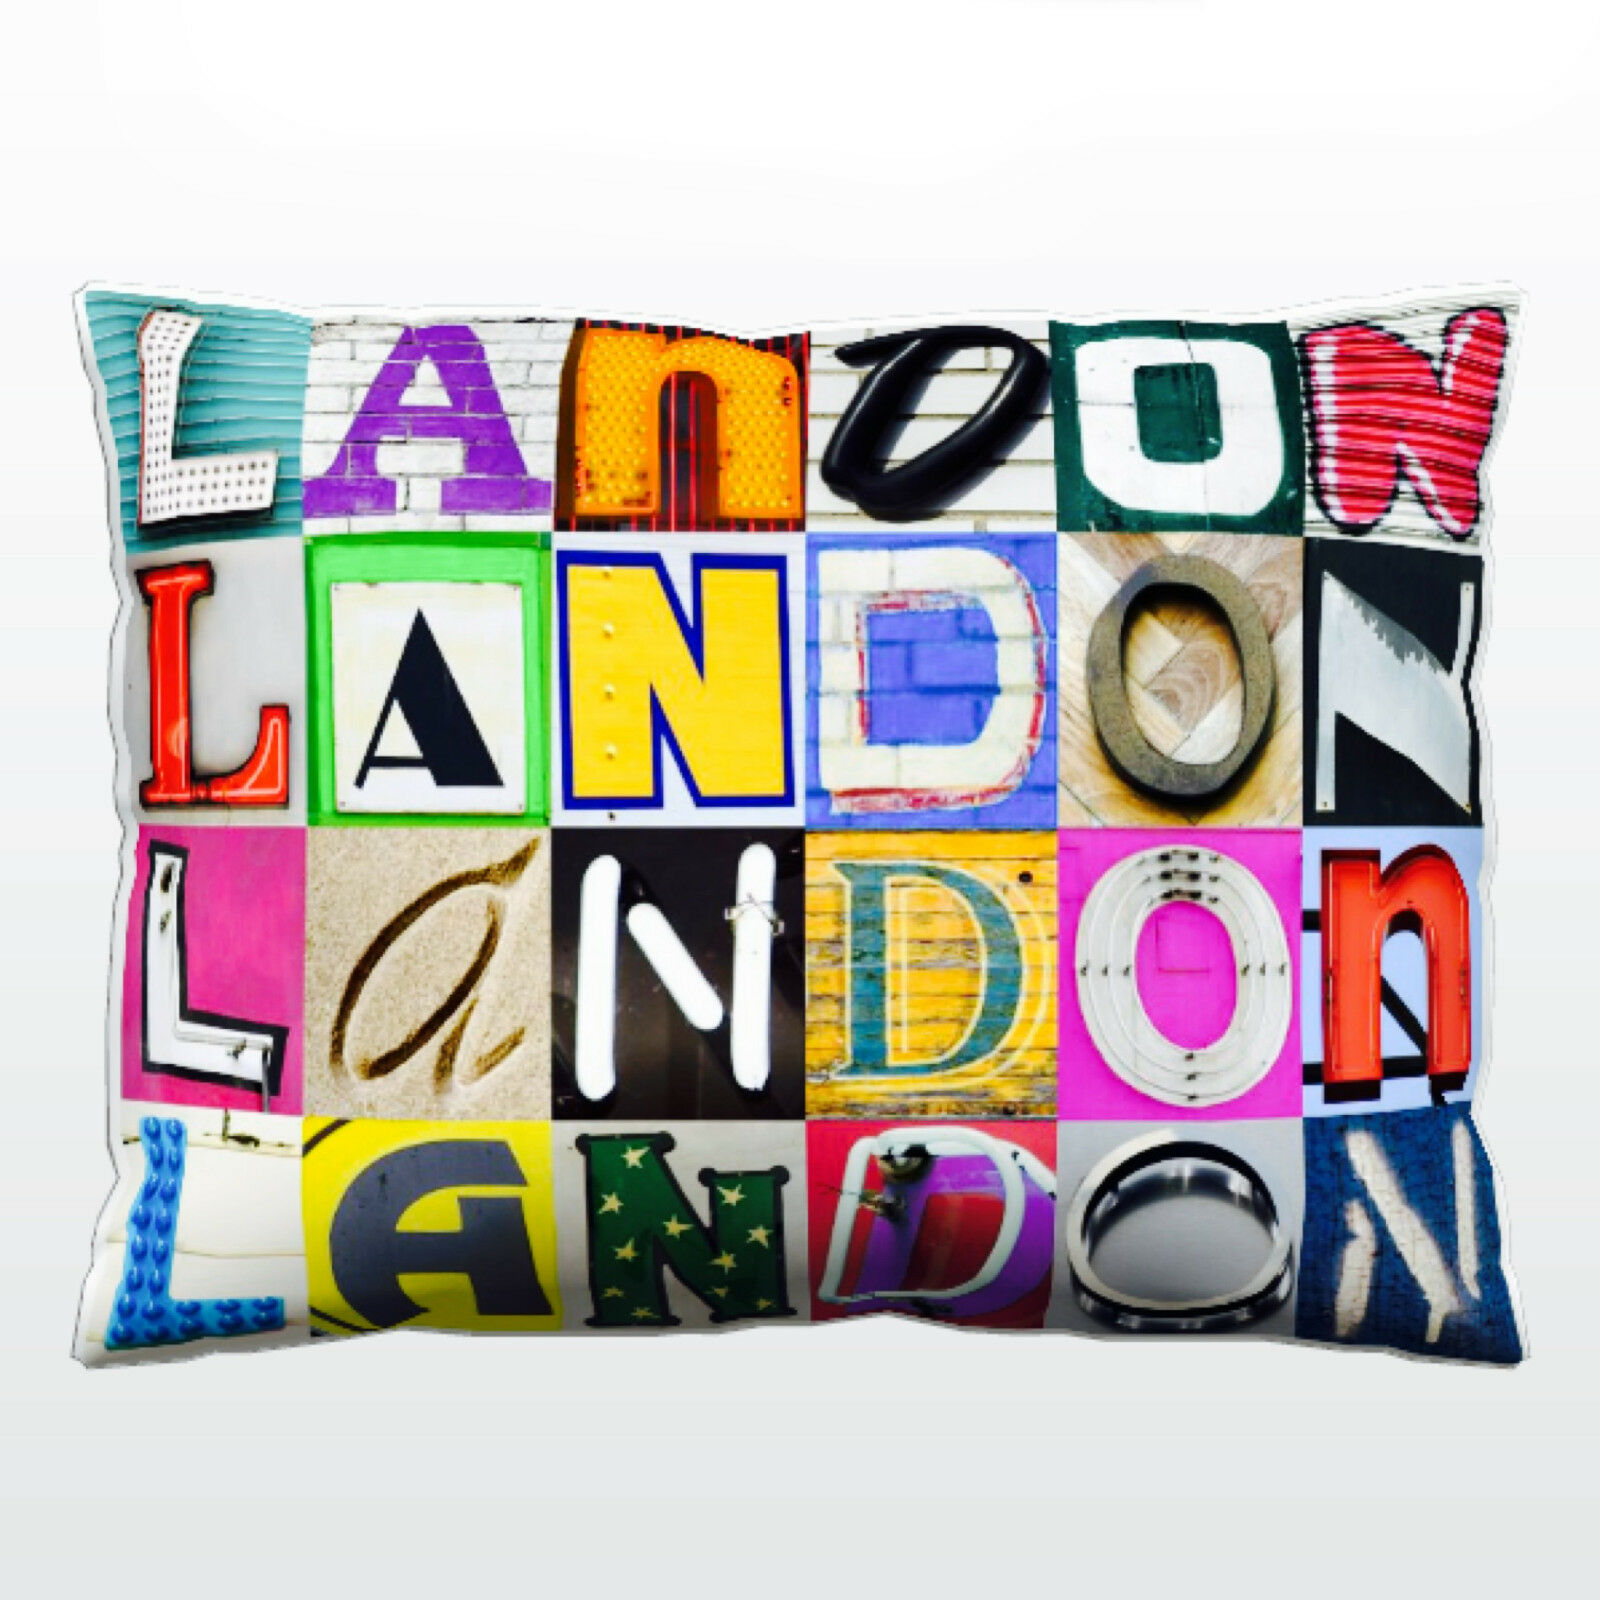 Personalized Pillow featuring the name LANDON in photos of sign letters